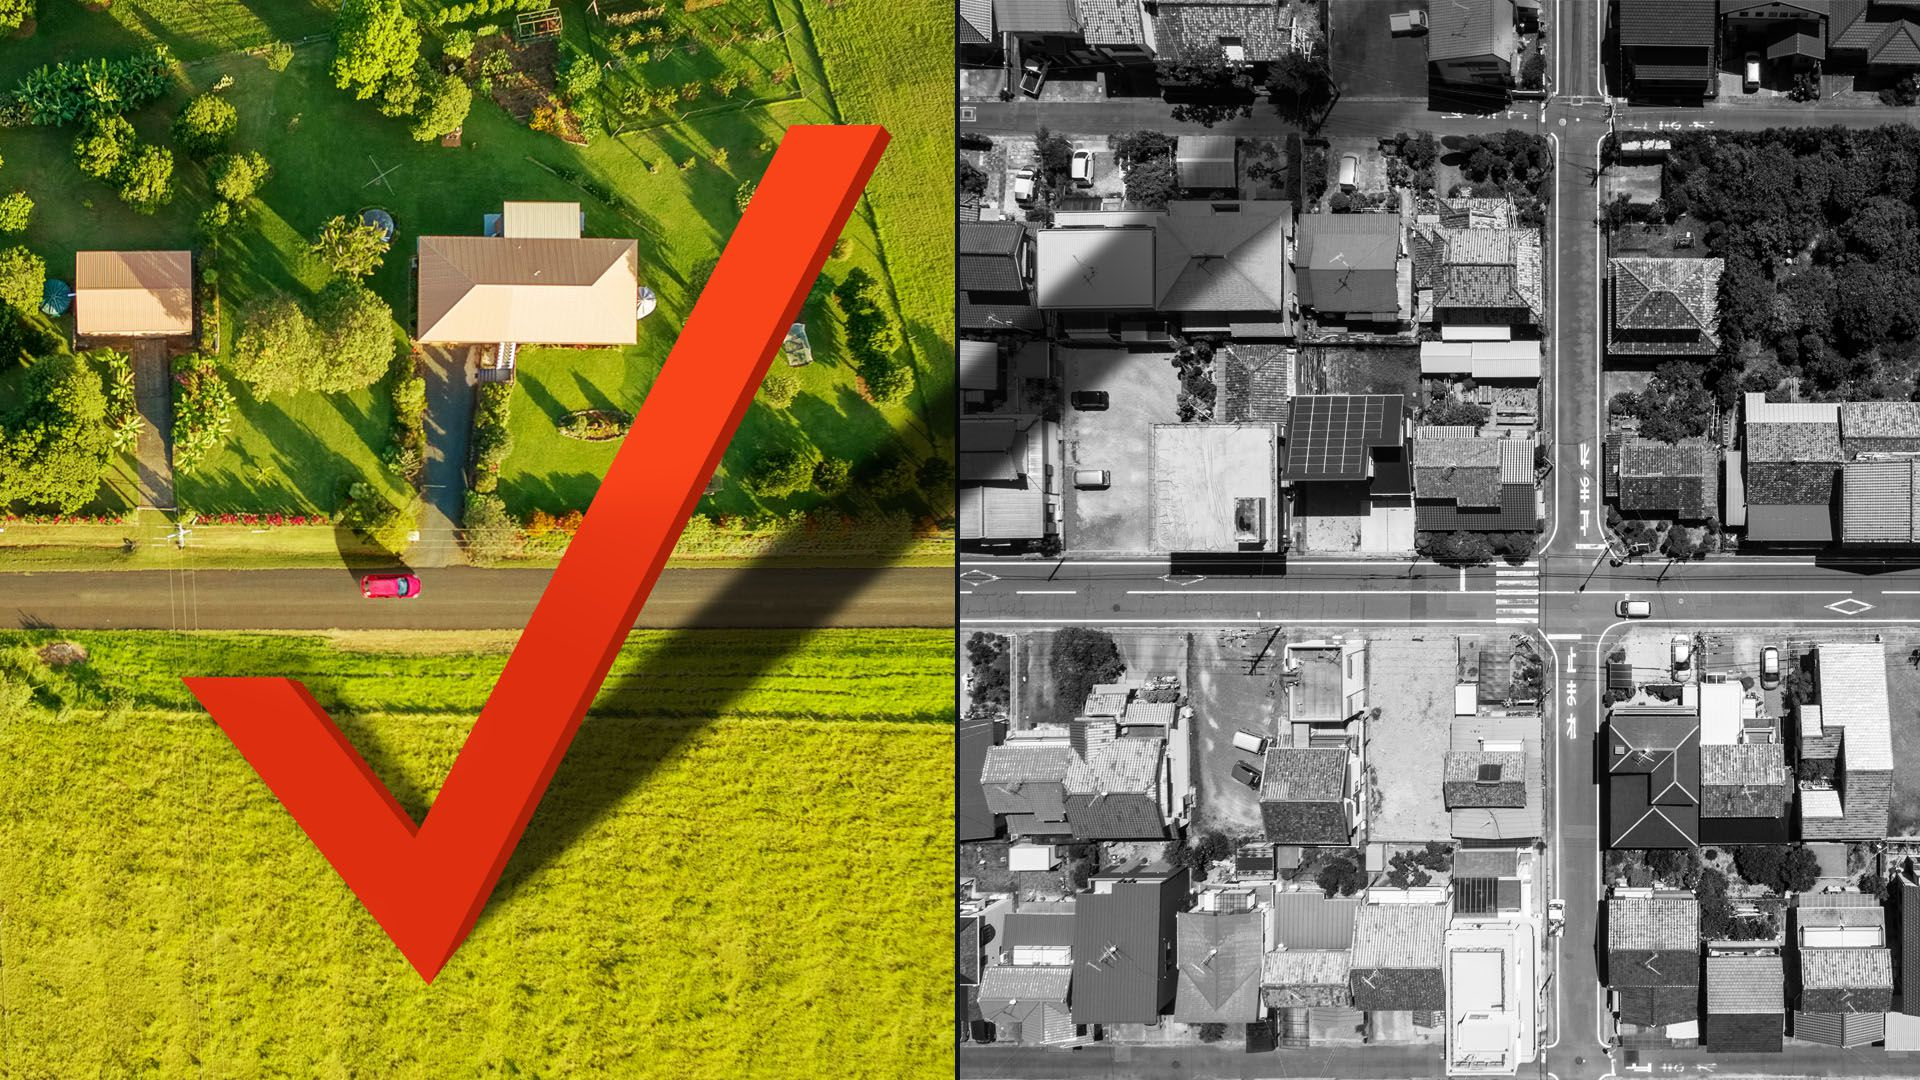 Illustration of a rural area in color with a giant check mark casting a shadow over the black and white urban area next to it